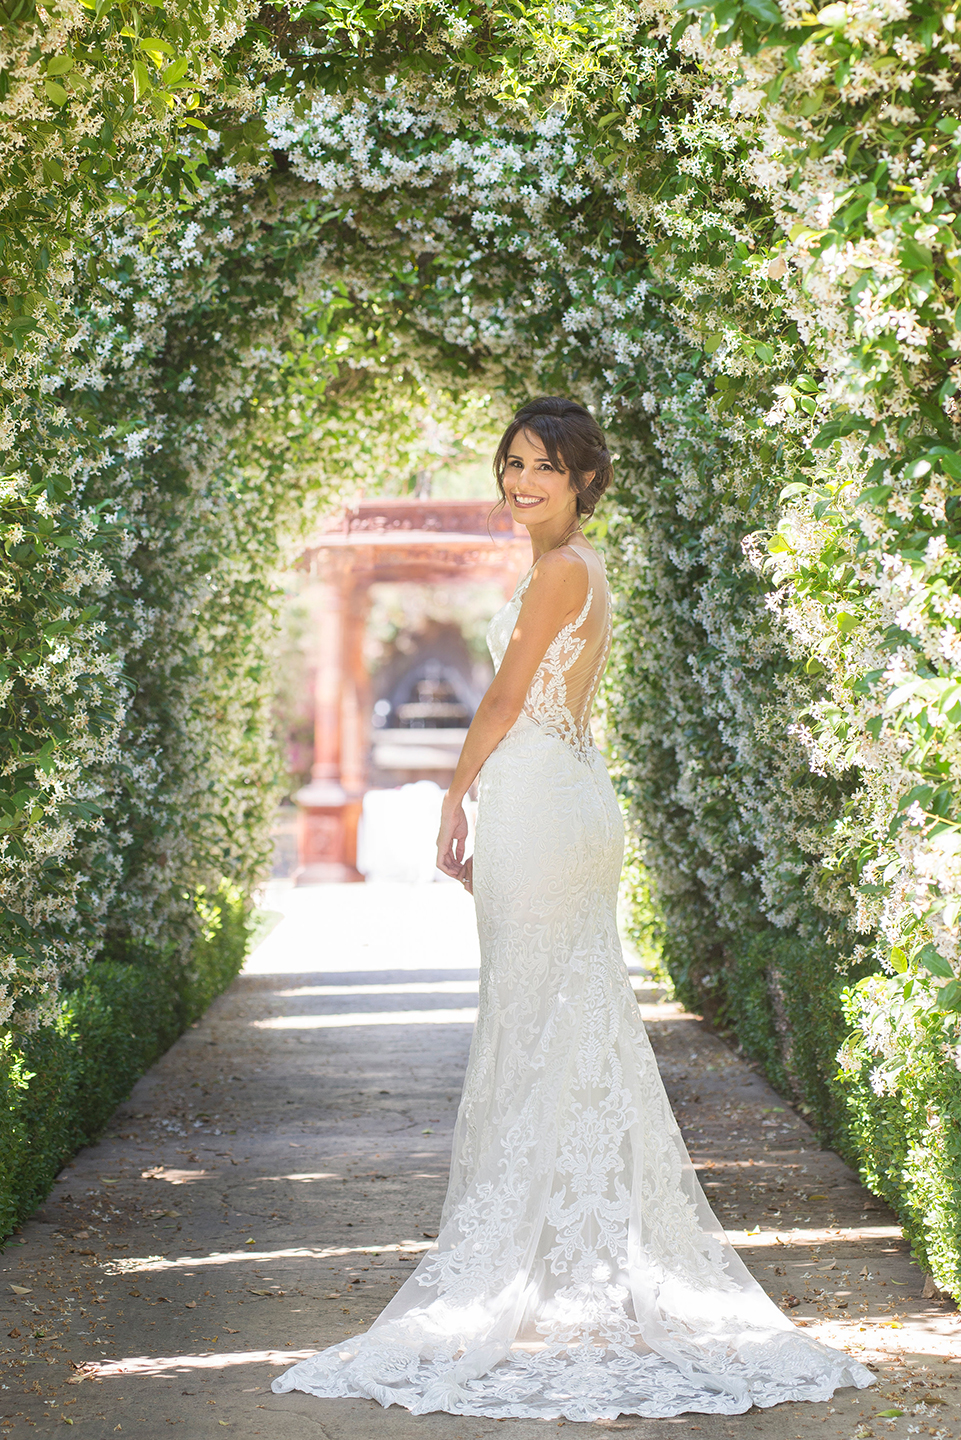 We both fell in love with this honeysuckle archway and knew we had to get some shots in here as well!